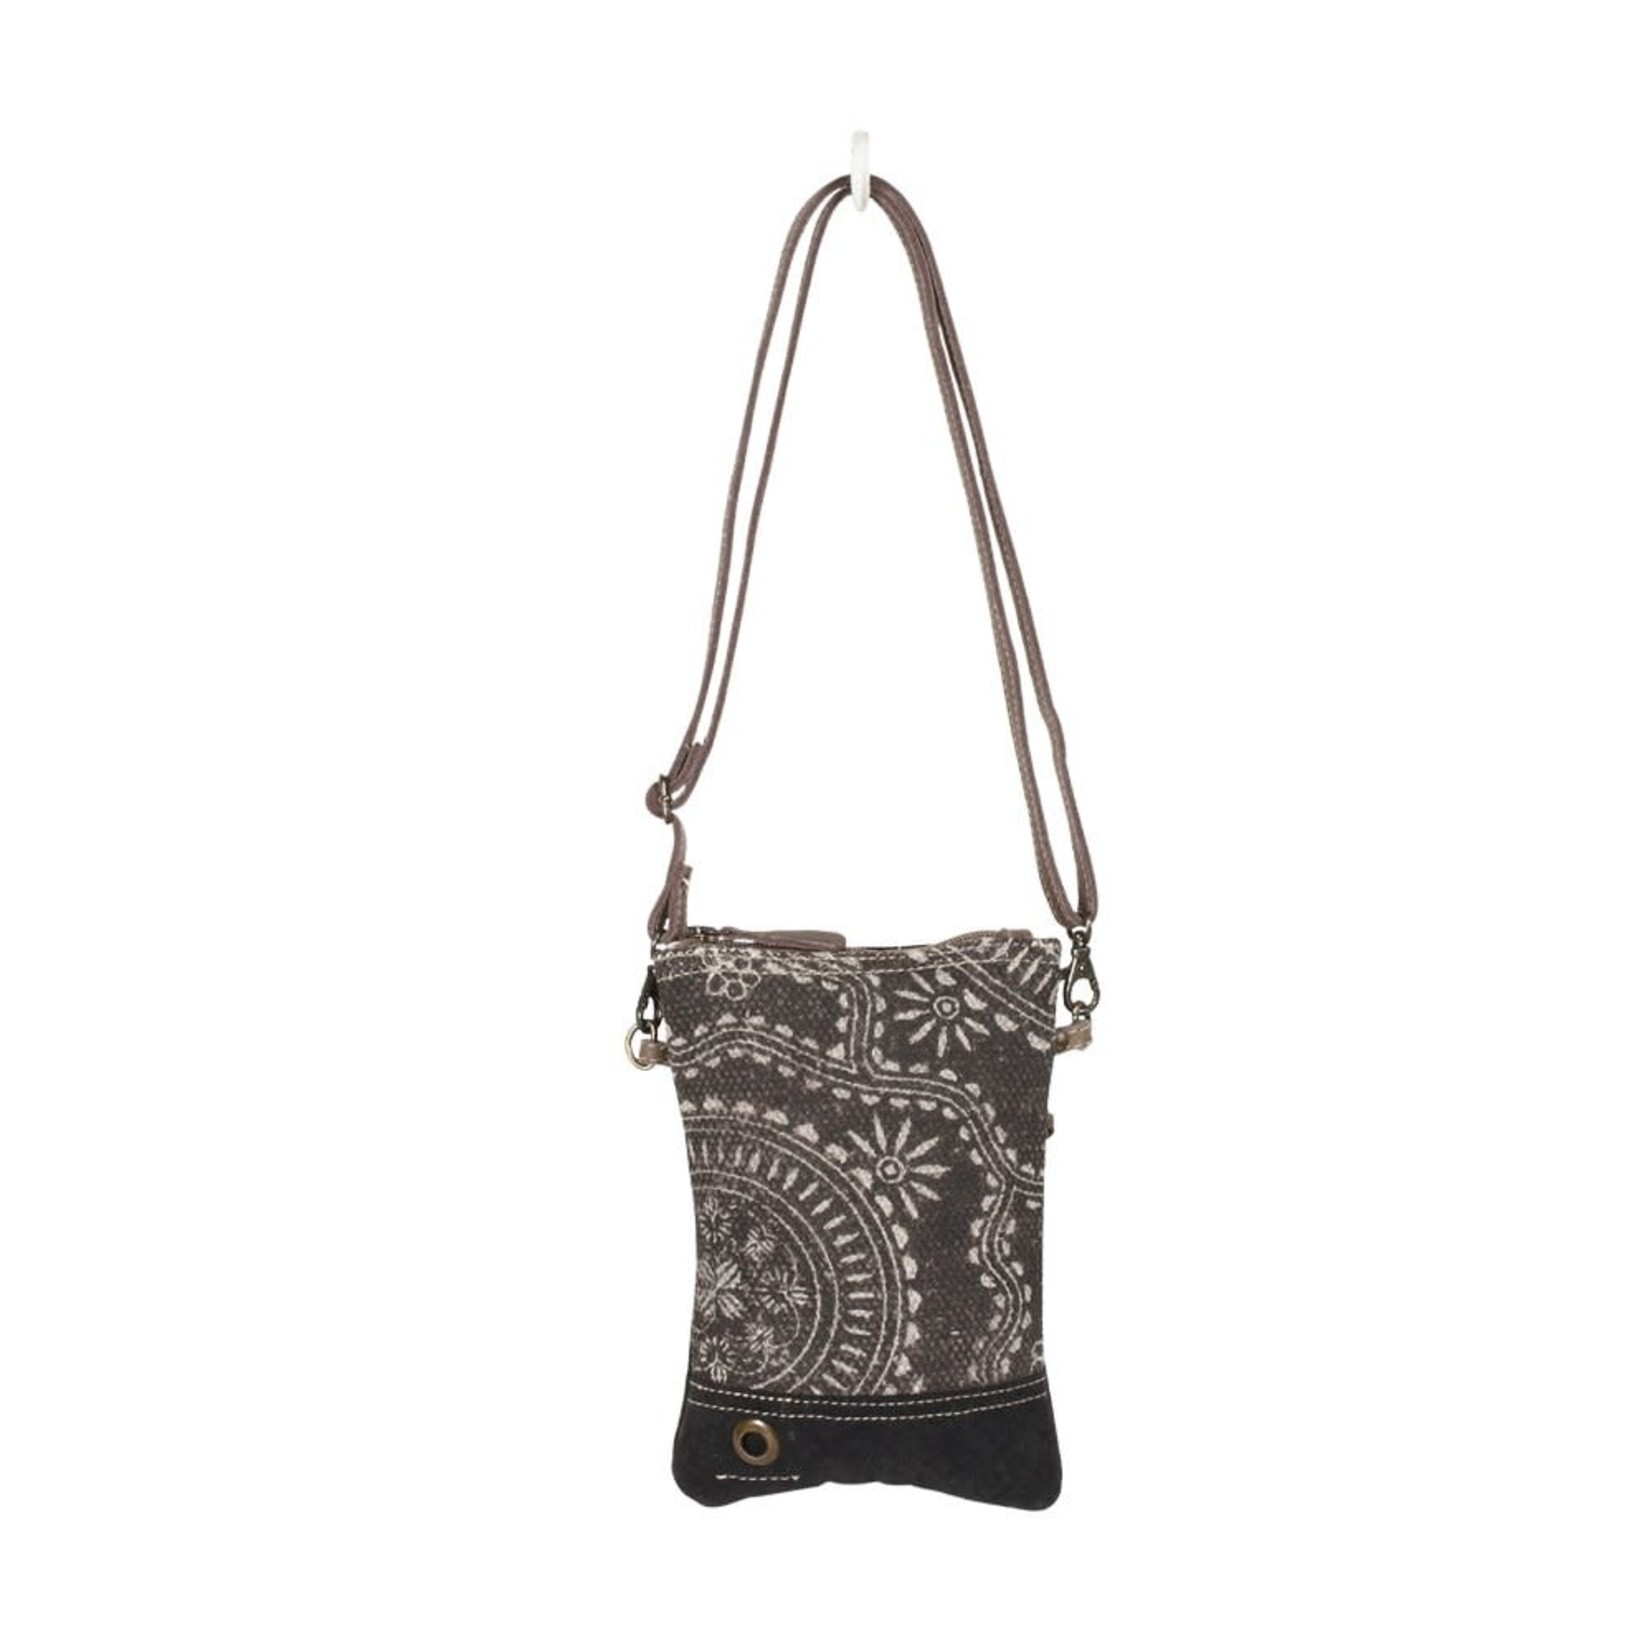 Myra Bags S-1326 Timeless Small & Crossbody Bag